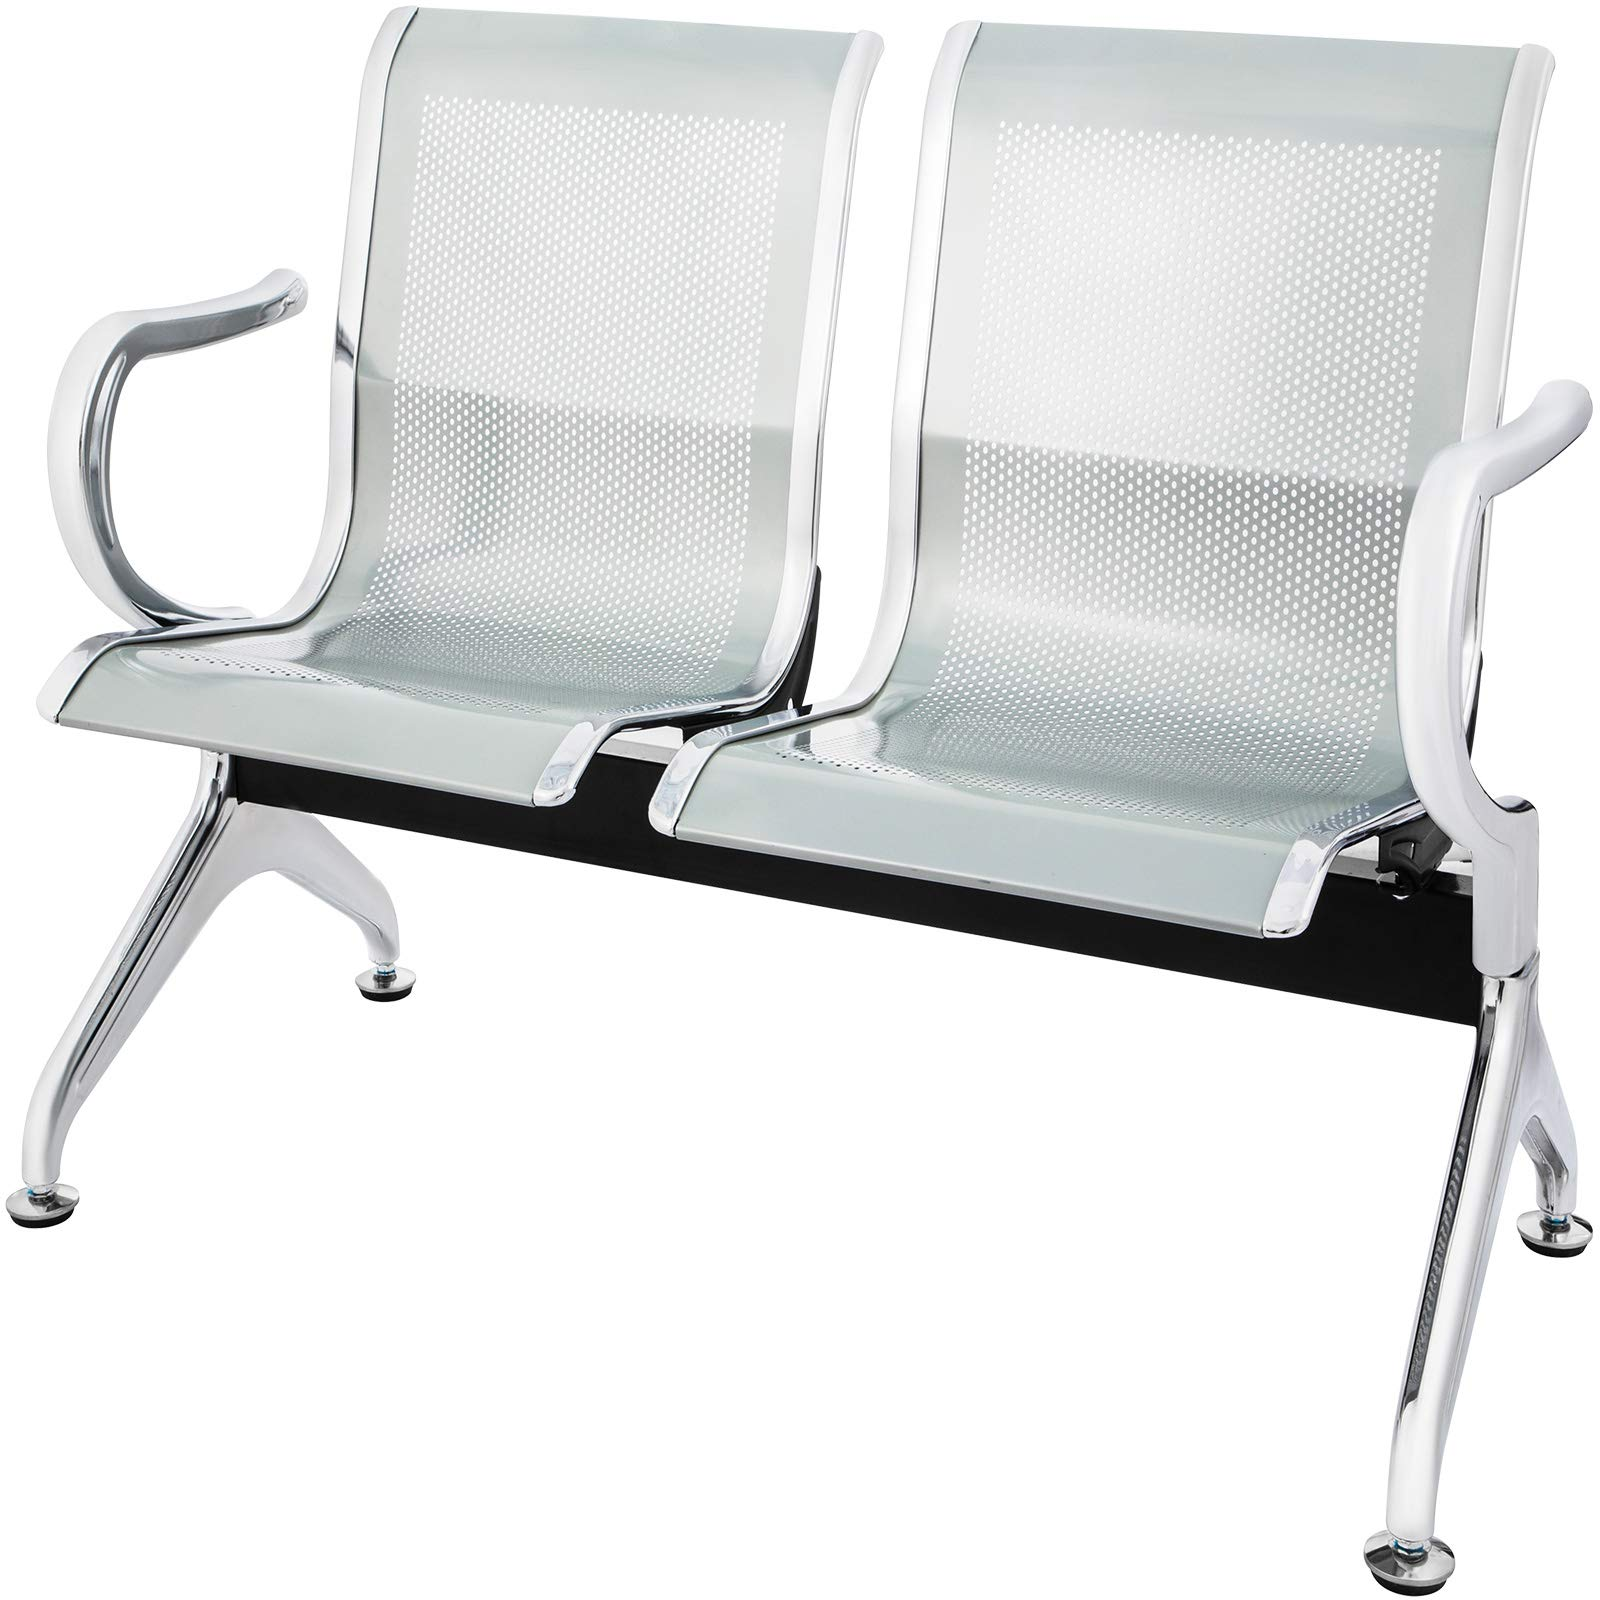 VEVOR Waiting Room Chairs 2 Seat Stainless Steel Business Reception Bench for Office Barbershop Salon Airport Bank Hospital Market(2 Seat,Silver)